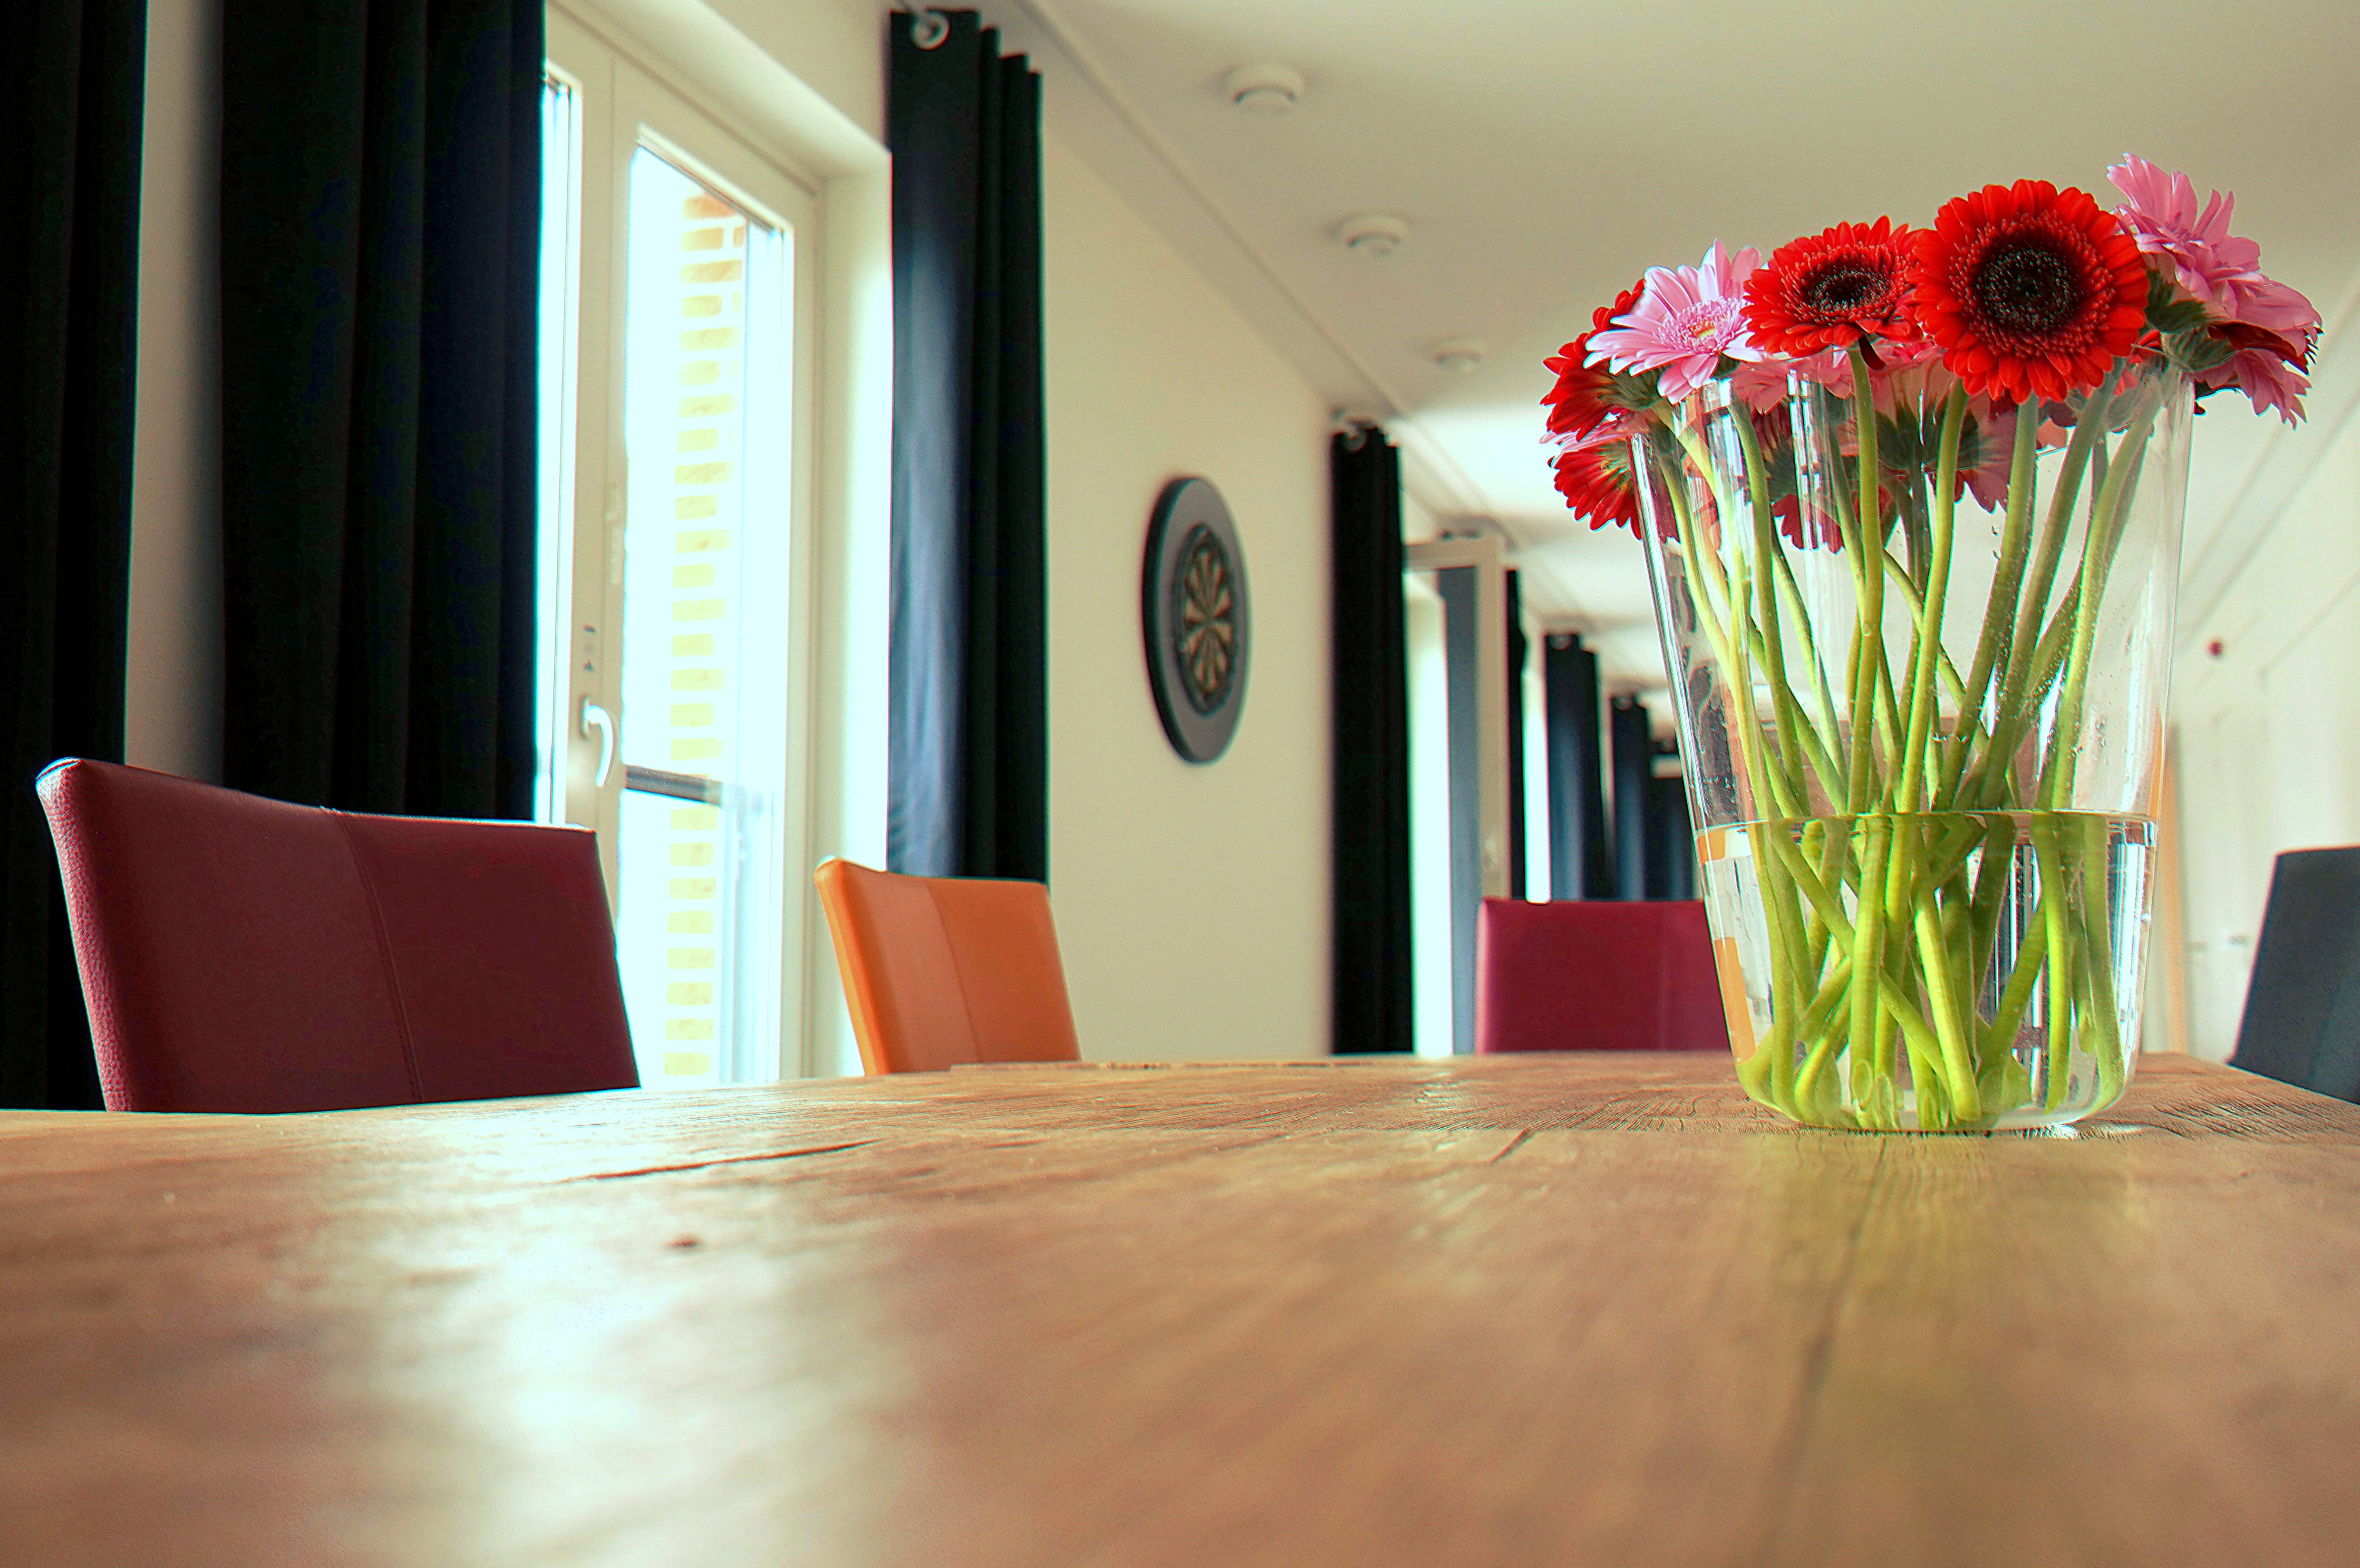 Free stock photos of flower vase pexels free stock photo of wood flowers house table reviewsmspy